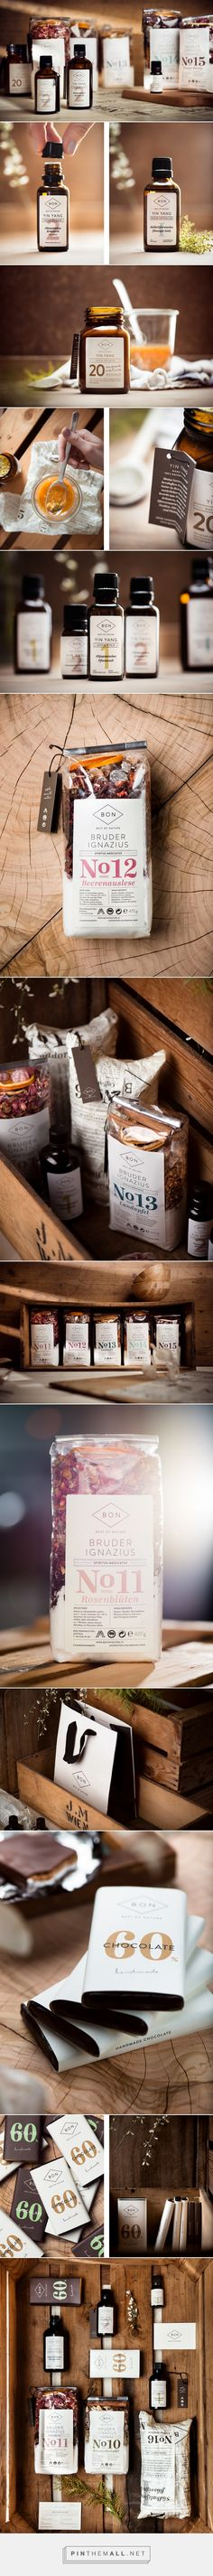 Best of Nature // Best Of Nature, short BON, only uses the most natural ingredients in traditional recipes for its finest oils, herbal mixtures and essences